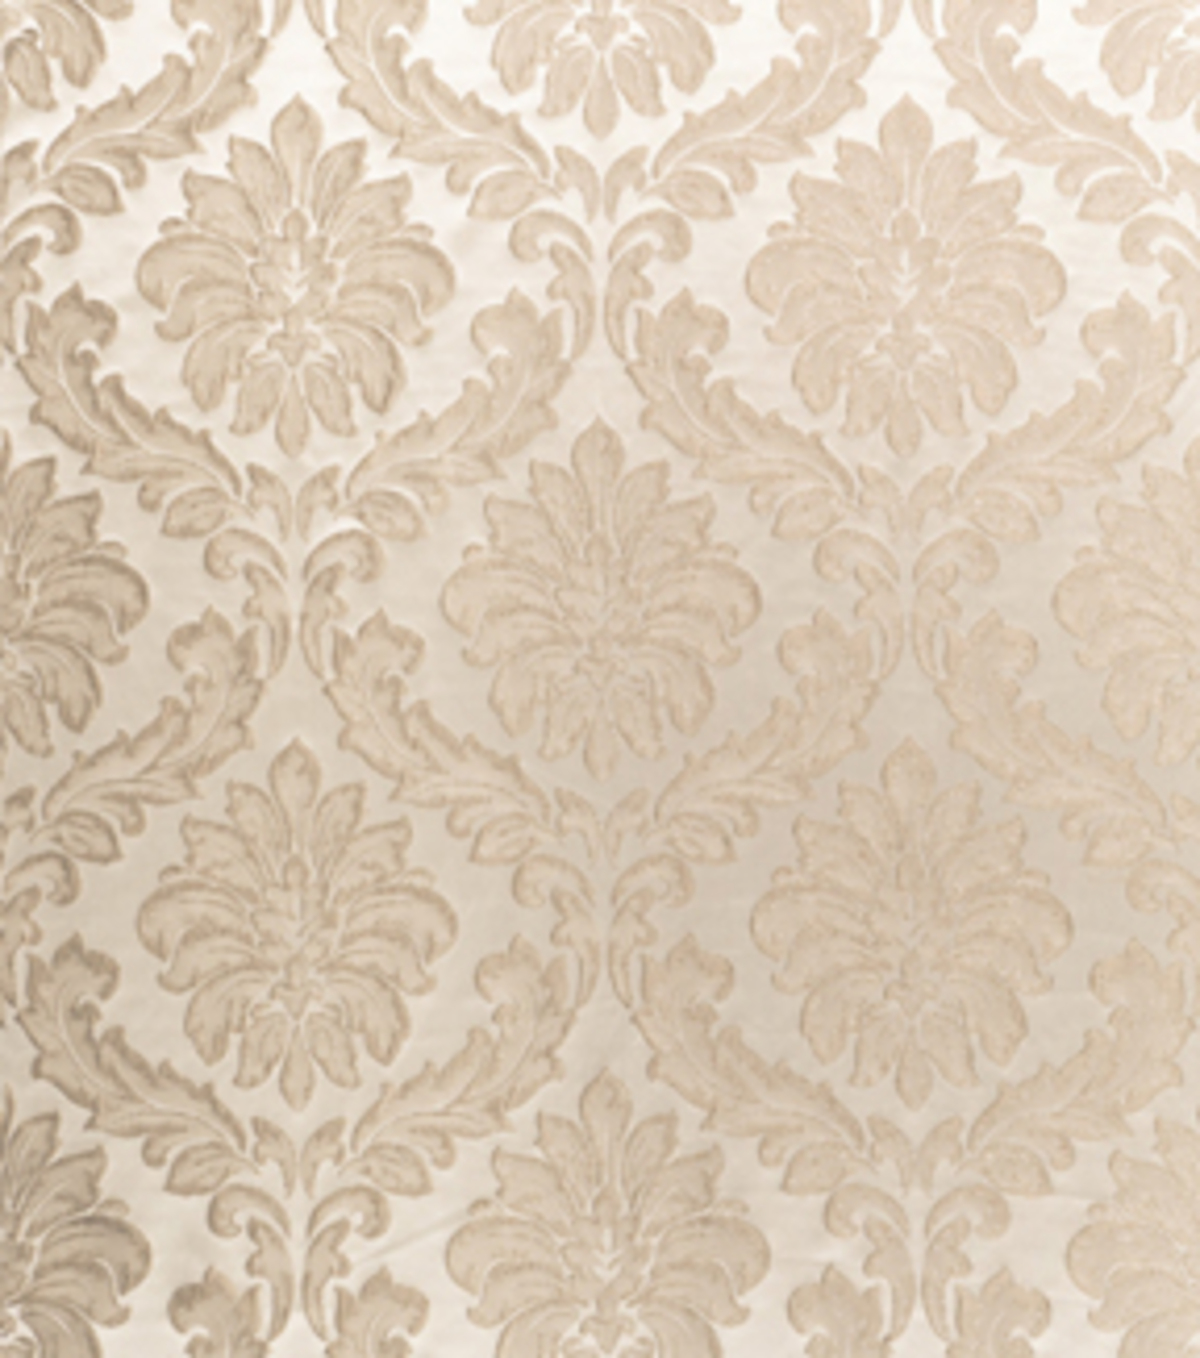 Home Decor 8\u0022x8\u0022 Fabric Swatch-Upholstery Fabric Eaton Square Door Champagne